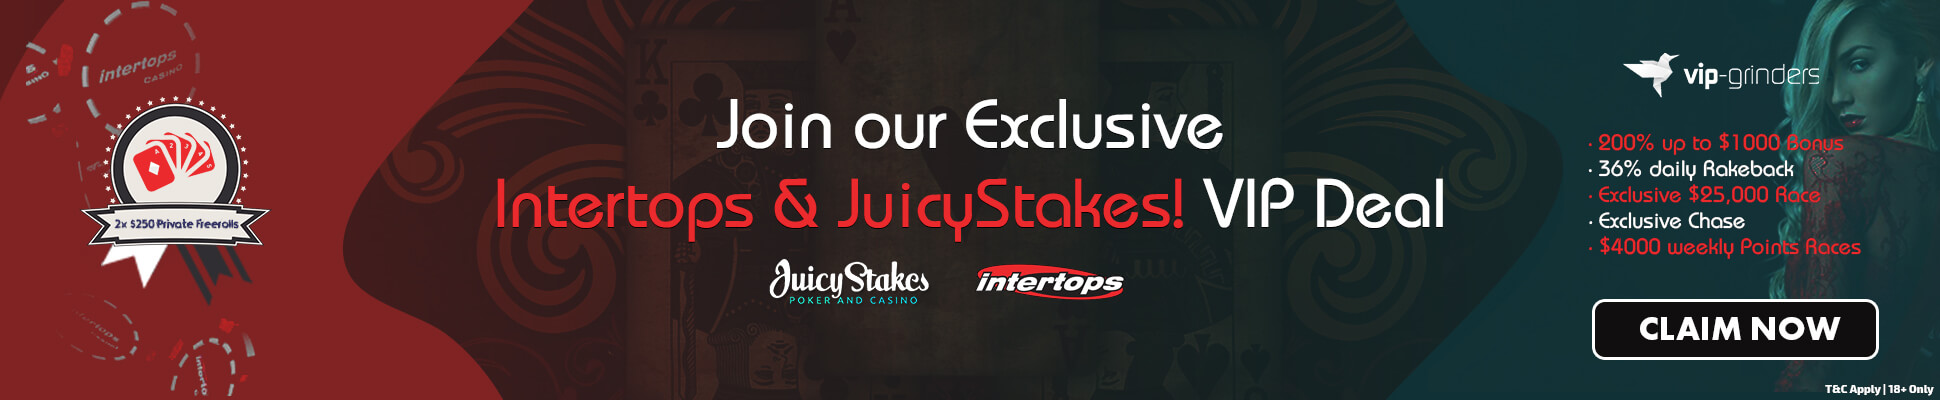 intertops-and-juicystakes-slider-october